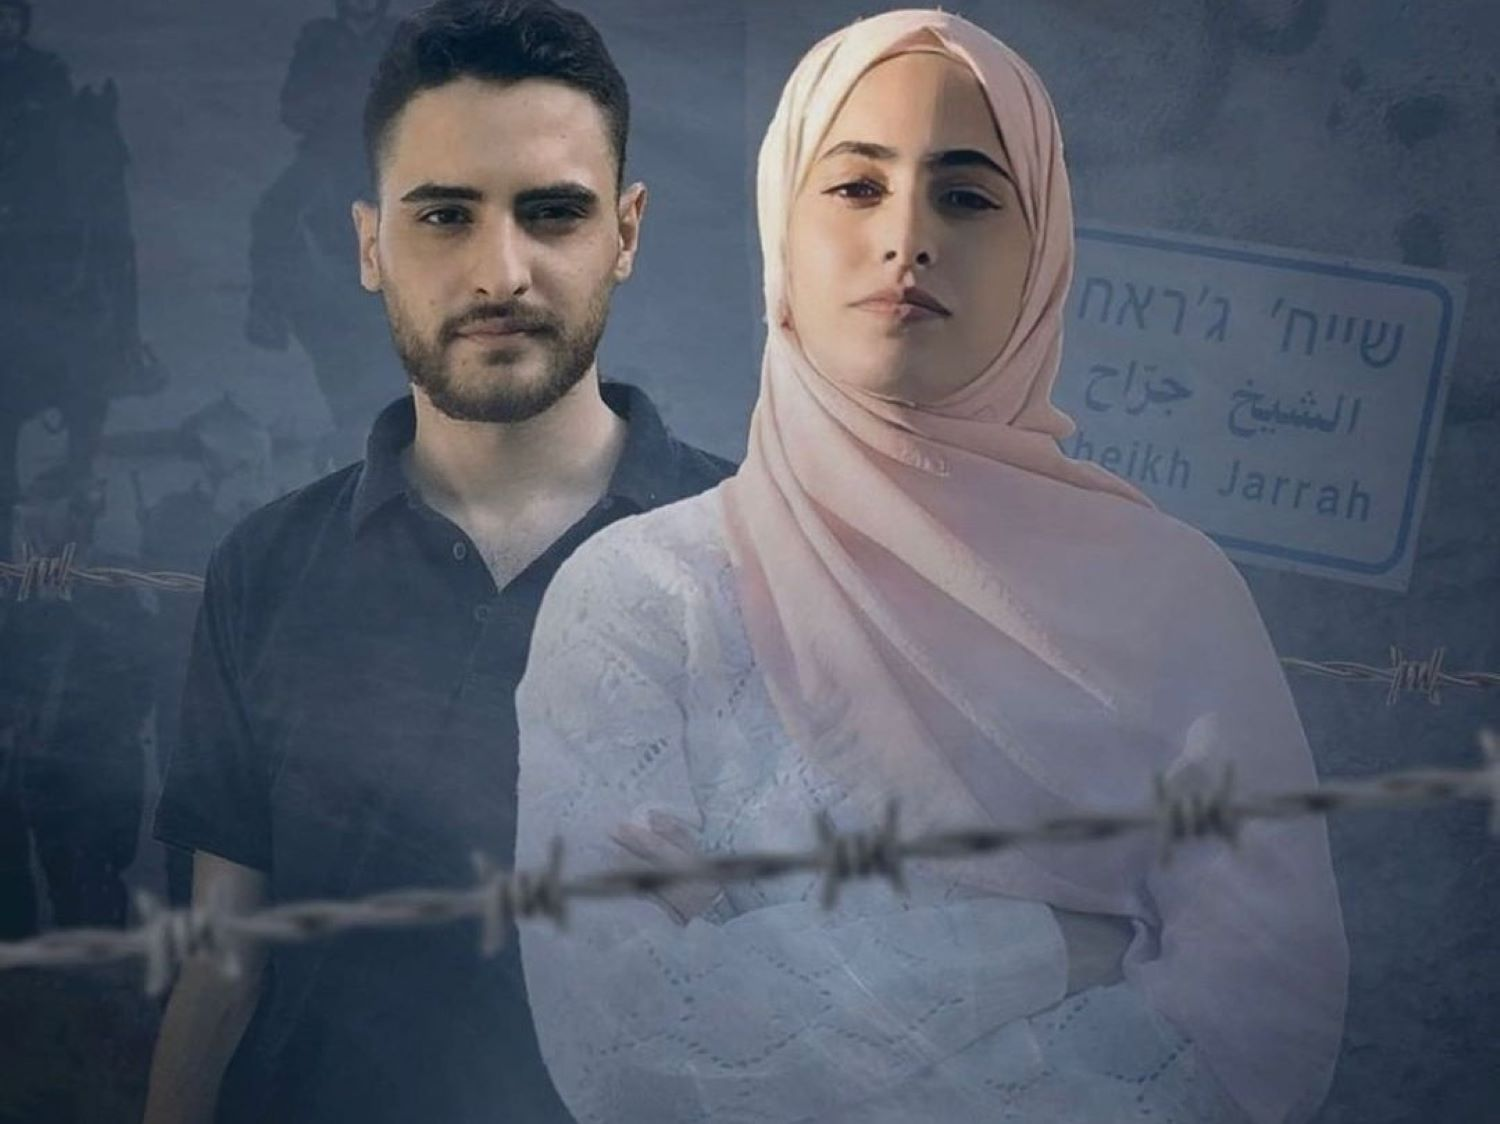 Palestine Special with Mohammed & Muna El-Kurd and Antony Loewenstein on Above The Fray with Uncle Fernando